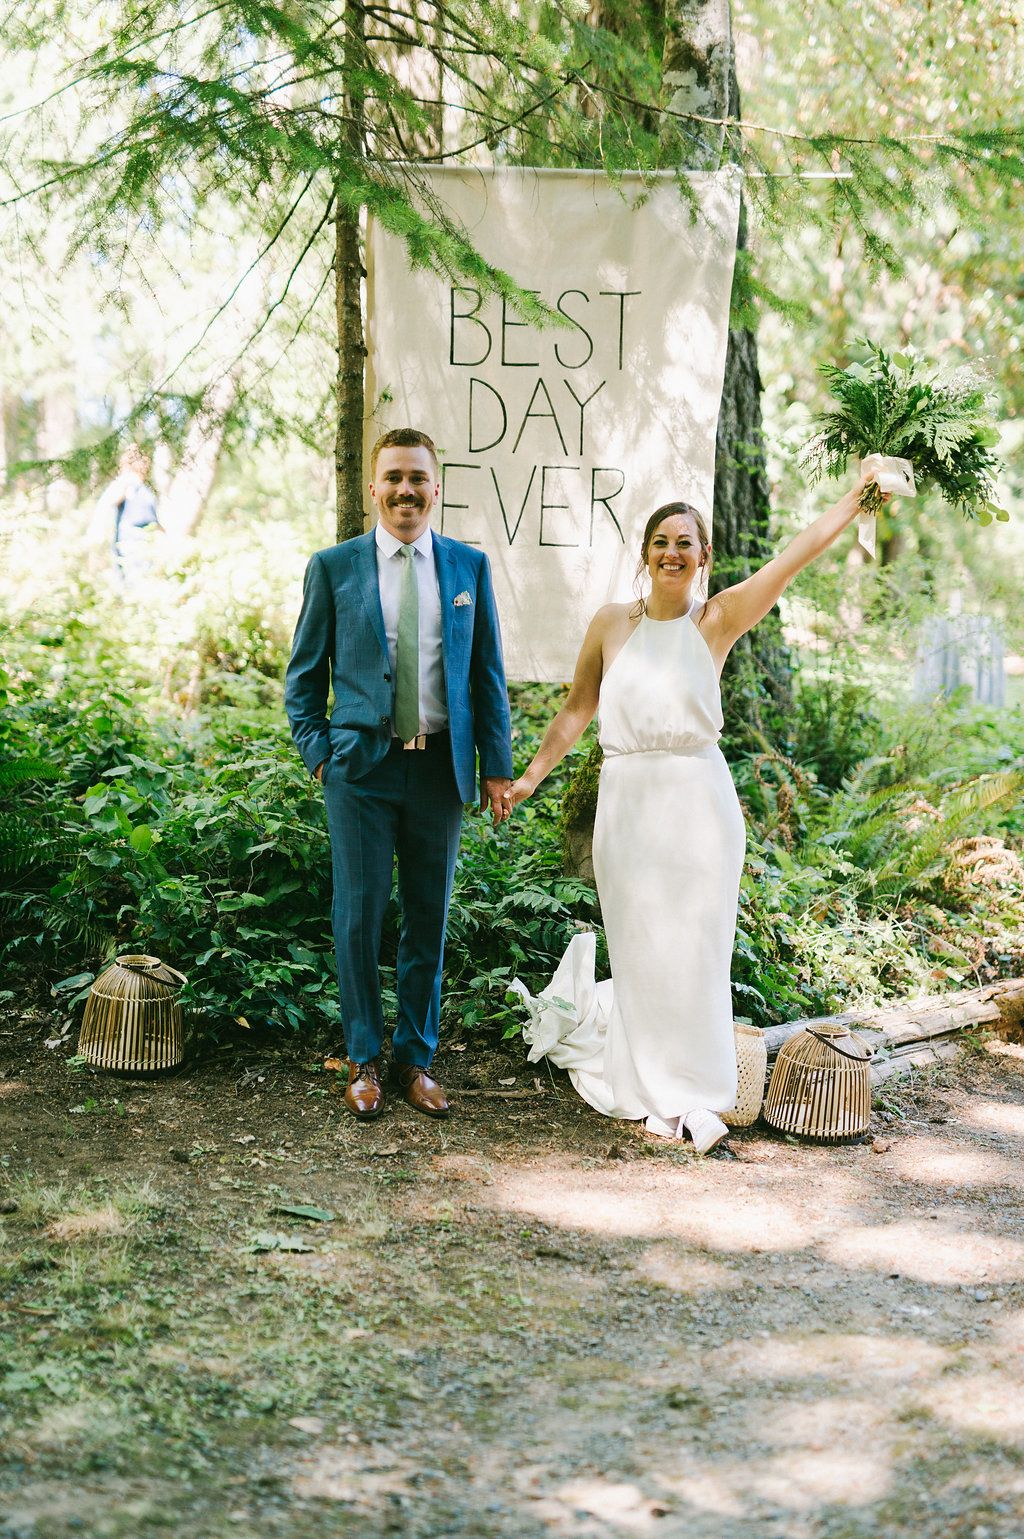 Lisa + Jaime's Wedding in the Forest in 2020 | Mountain ...